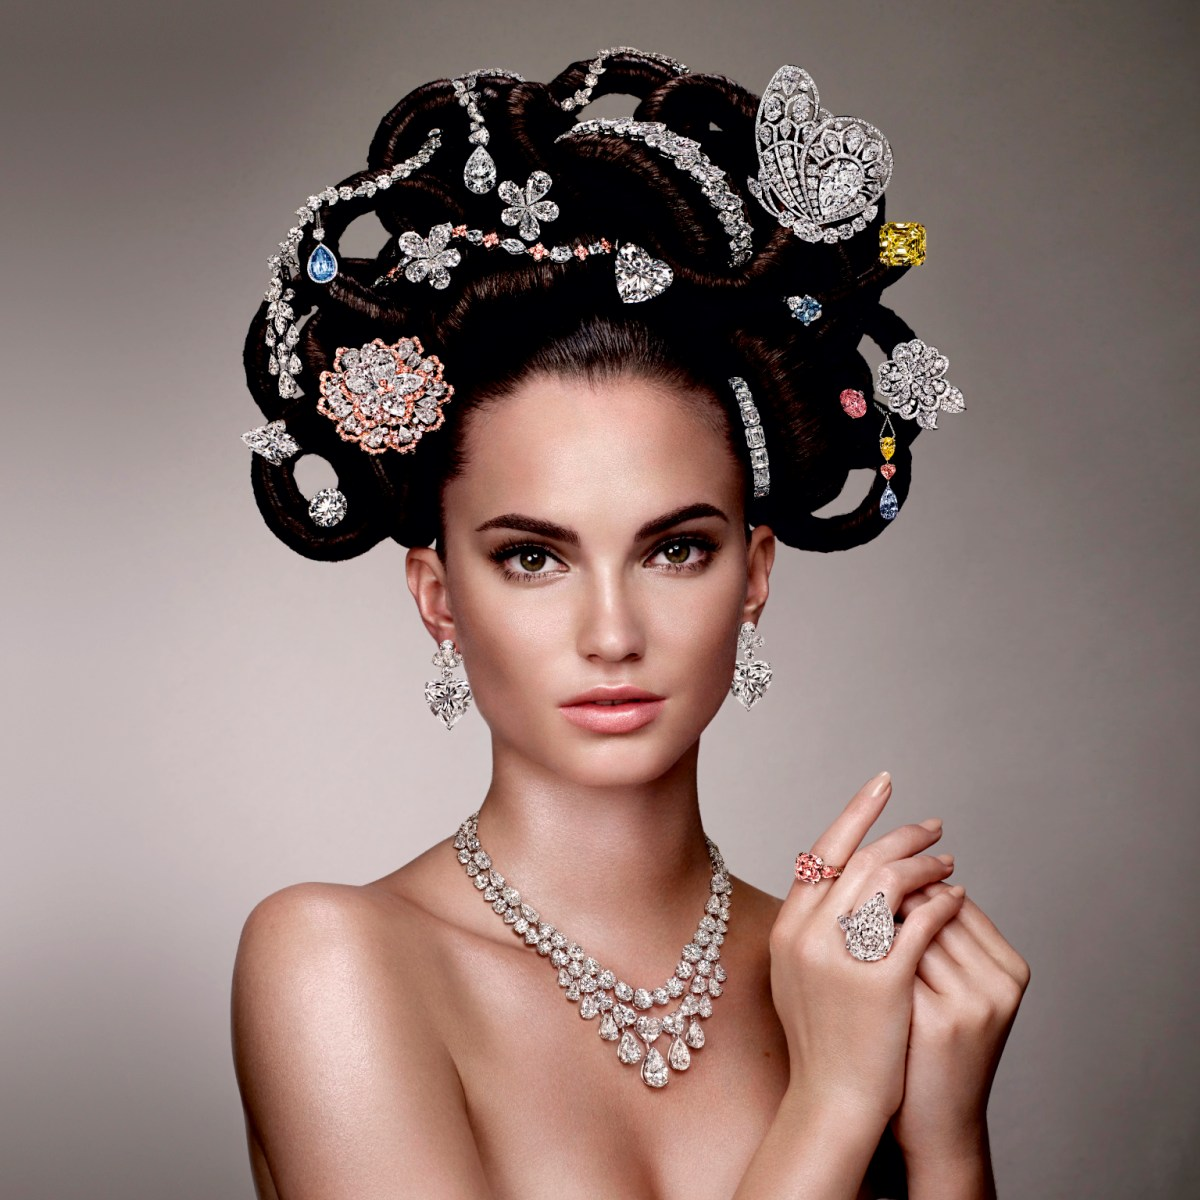 5 Hair Accessories Every Women Should Have